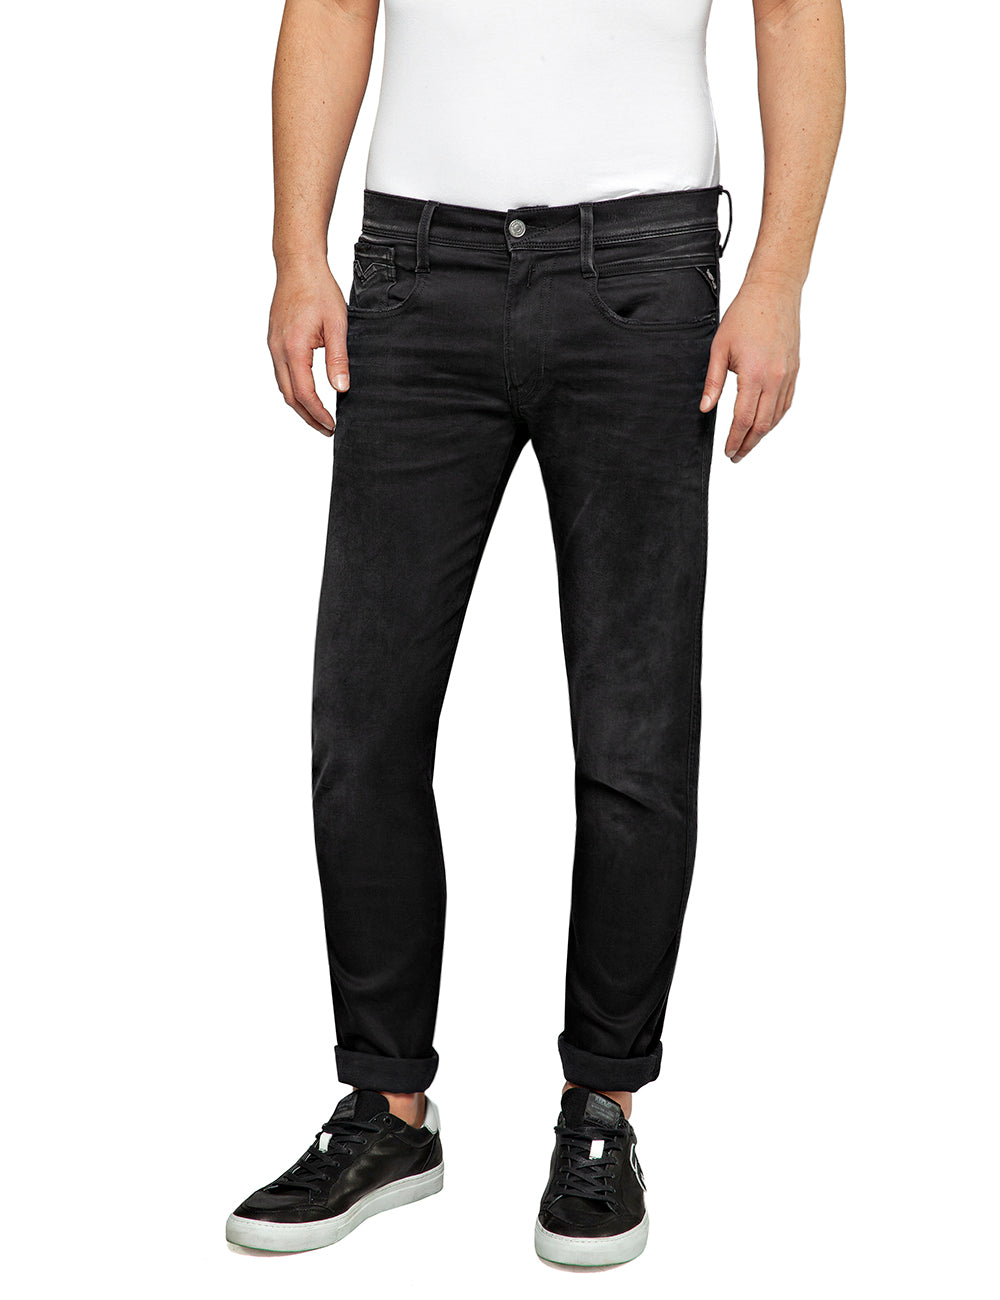 Replay Hyper-Flex Black Washed Stretch Jeans